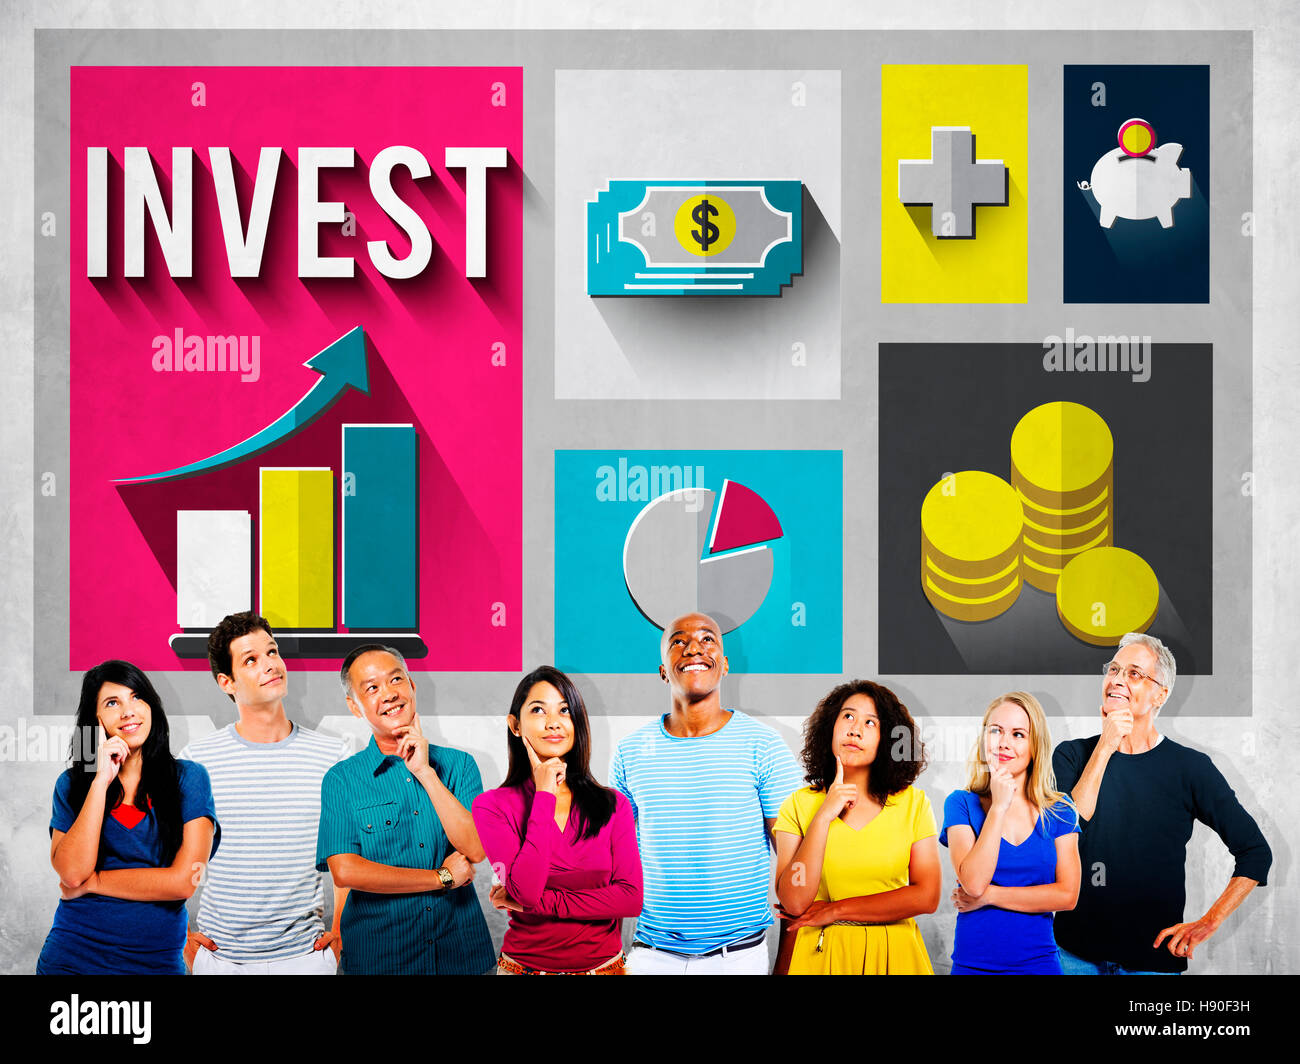 Invest Analysis Financial Economy Planning Concept - Stock Image